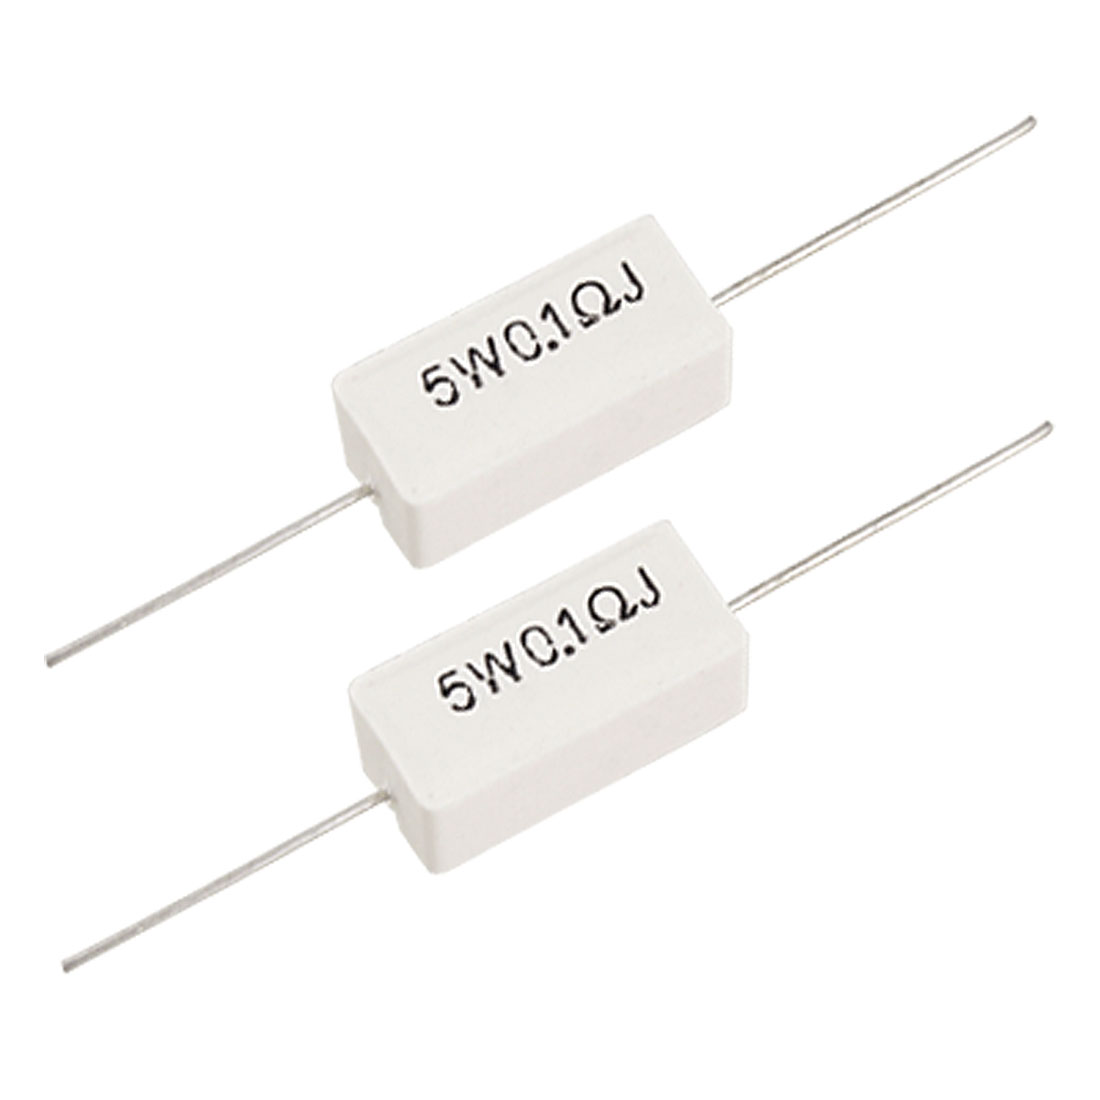 10x 5W Watt 0.1 Ohm 5% Ceramic Cement Power Resistors